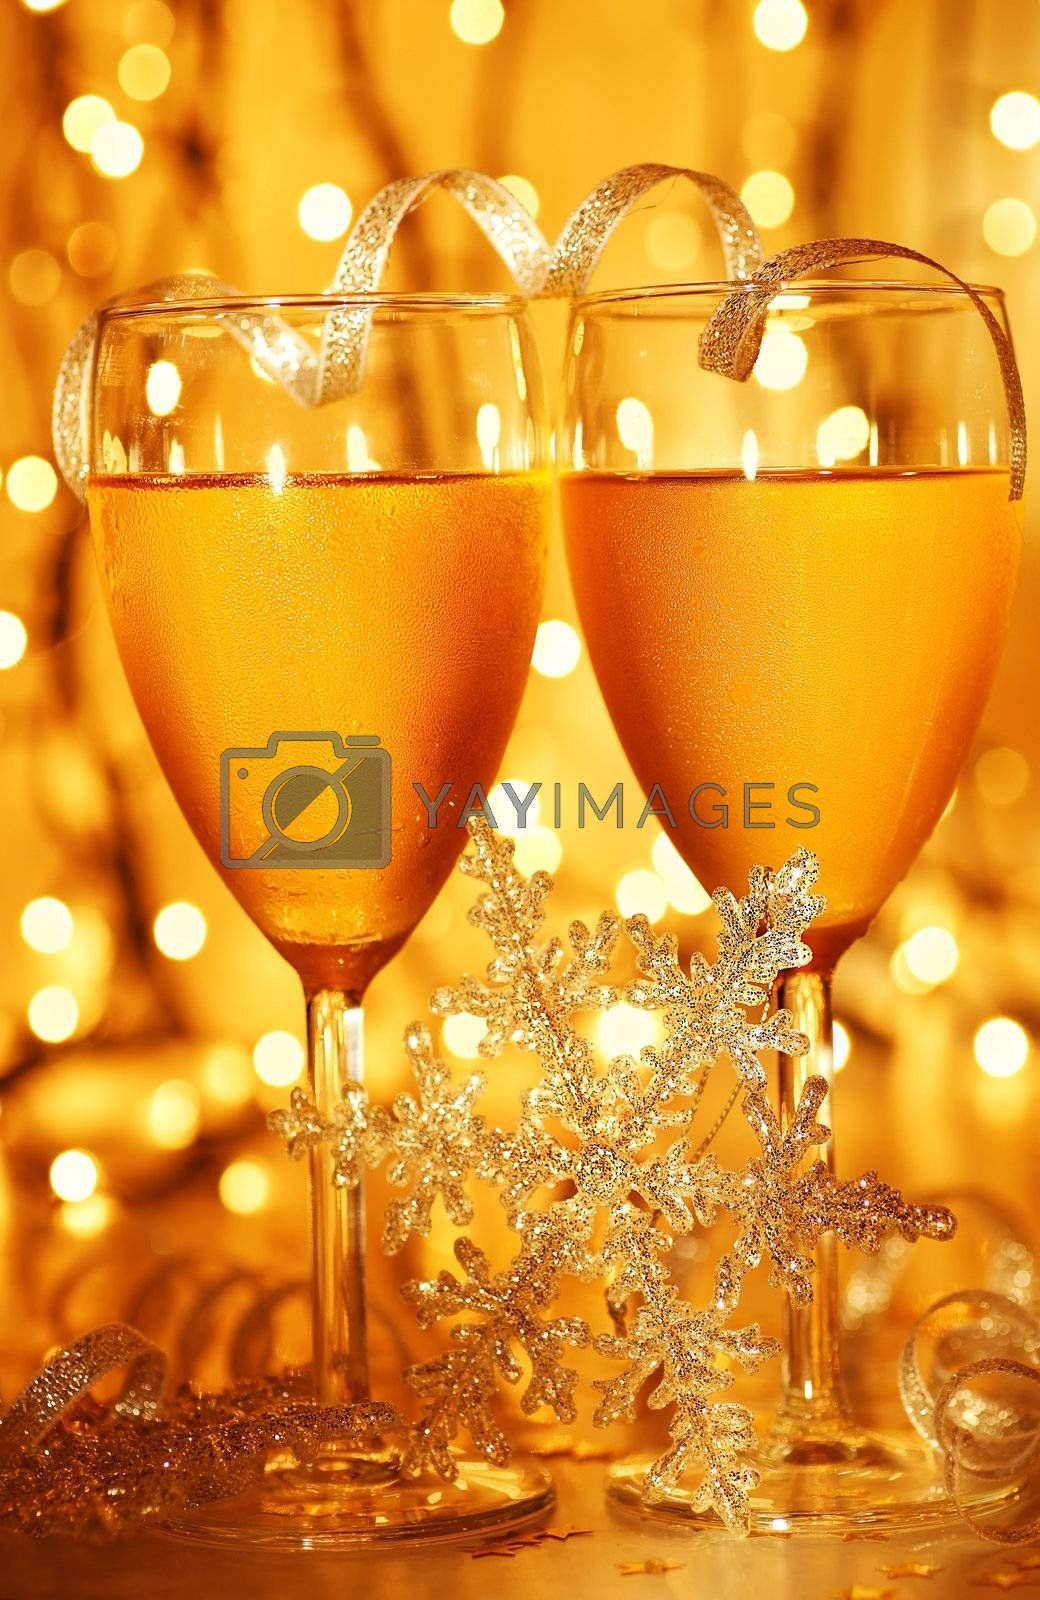 Romantic holiday dinner, celebration of Christmas or new year eve, party with Champagne and festive gold ornament decoration